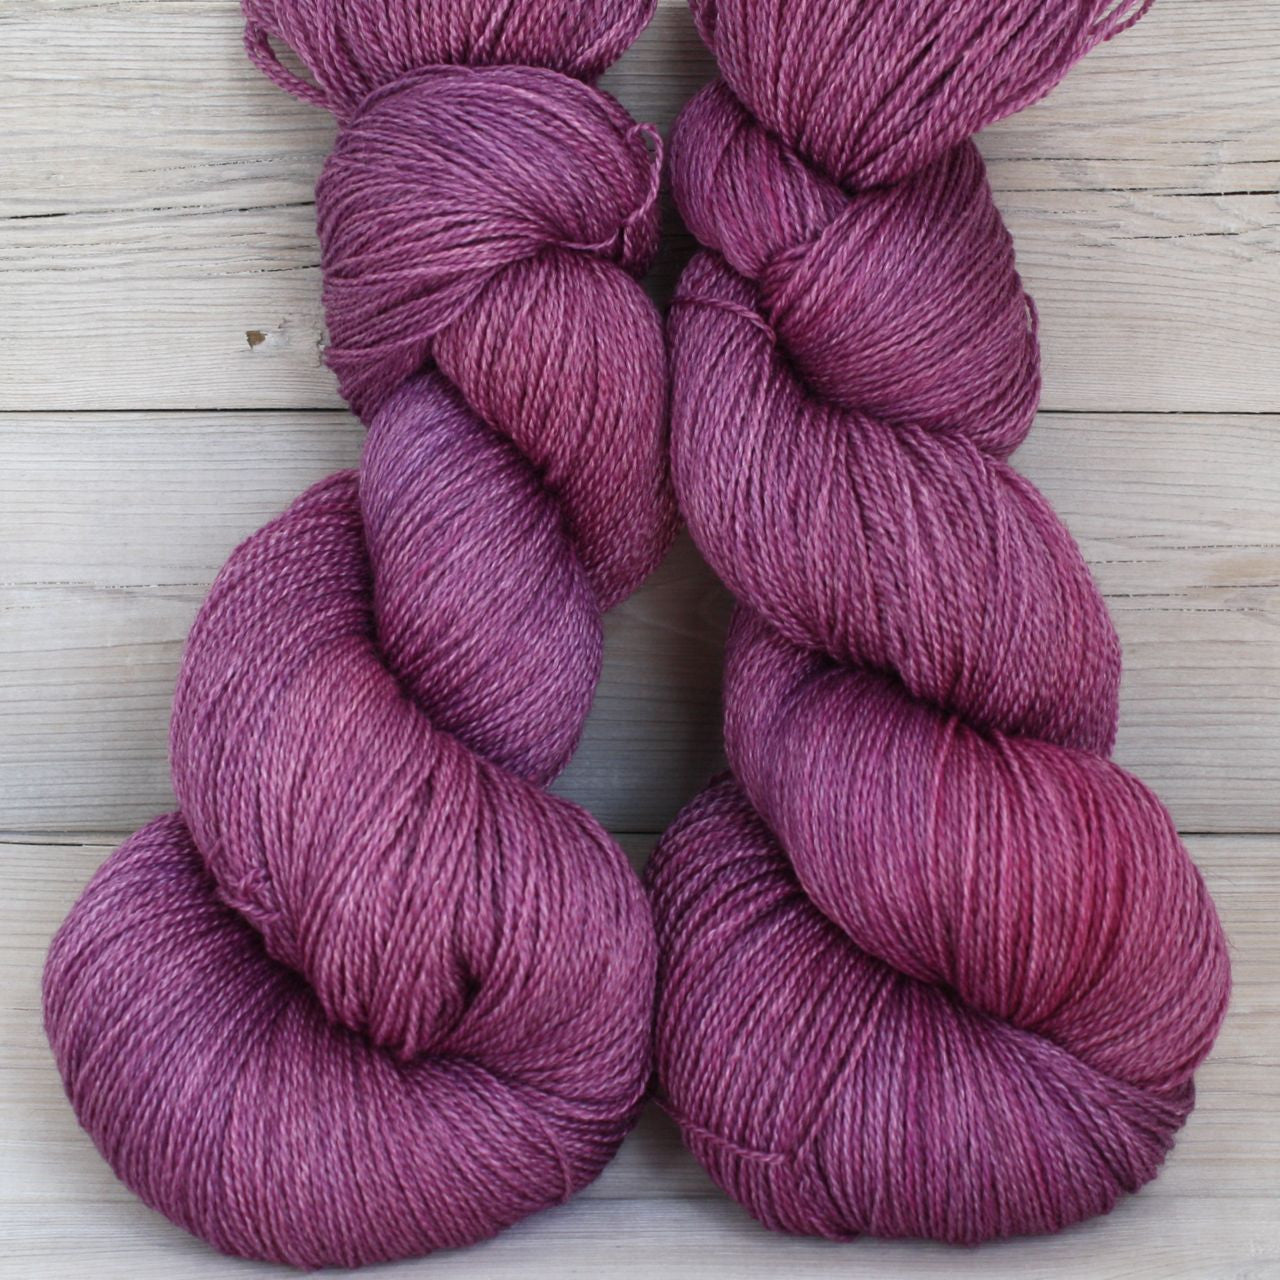 Starbright Yarn | Colorway: Bougainvillea